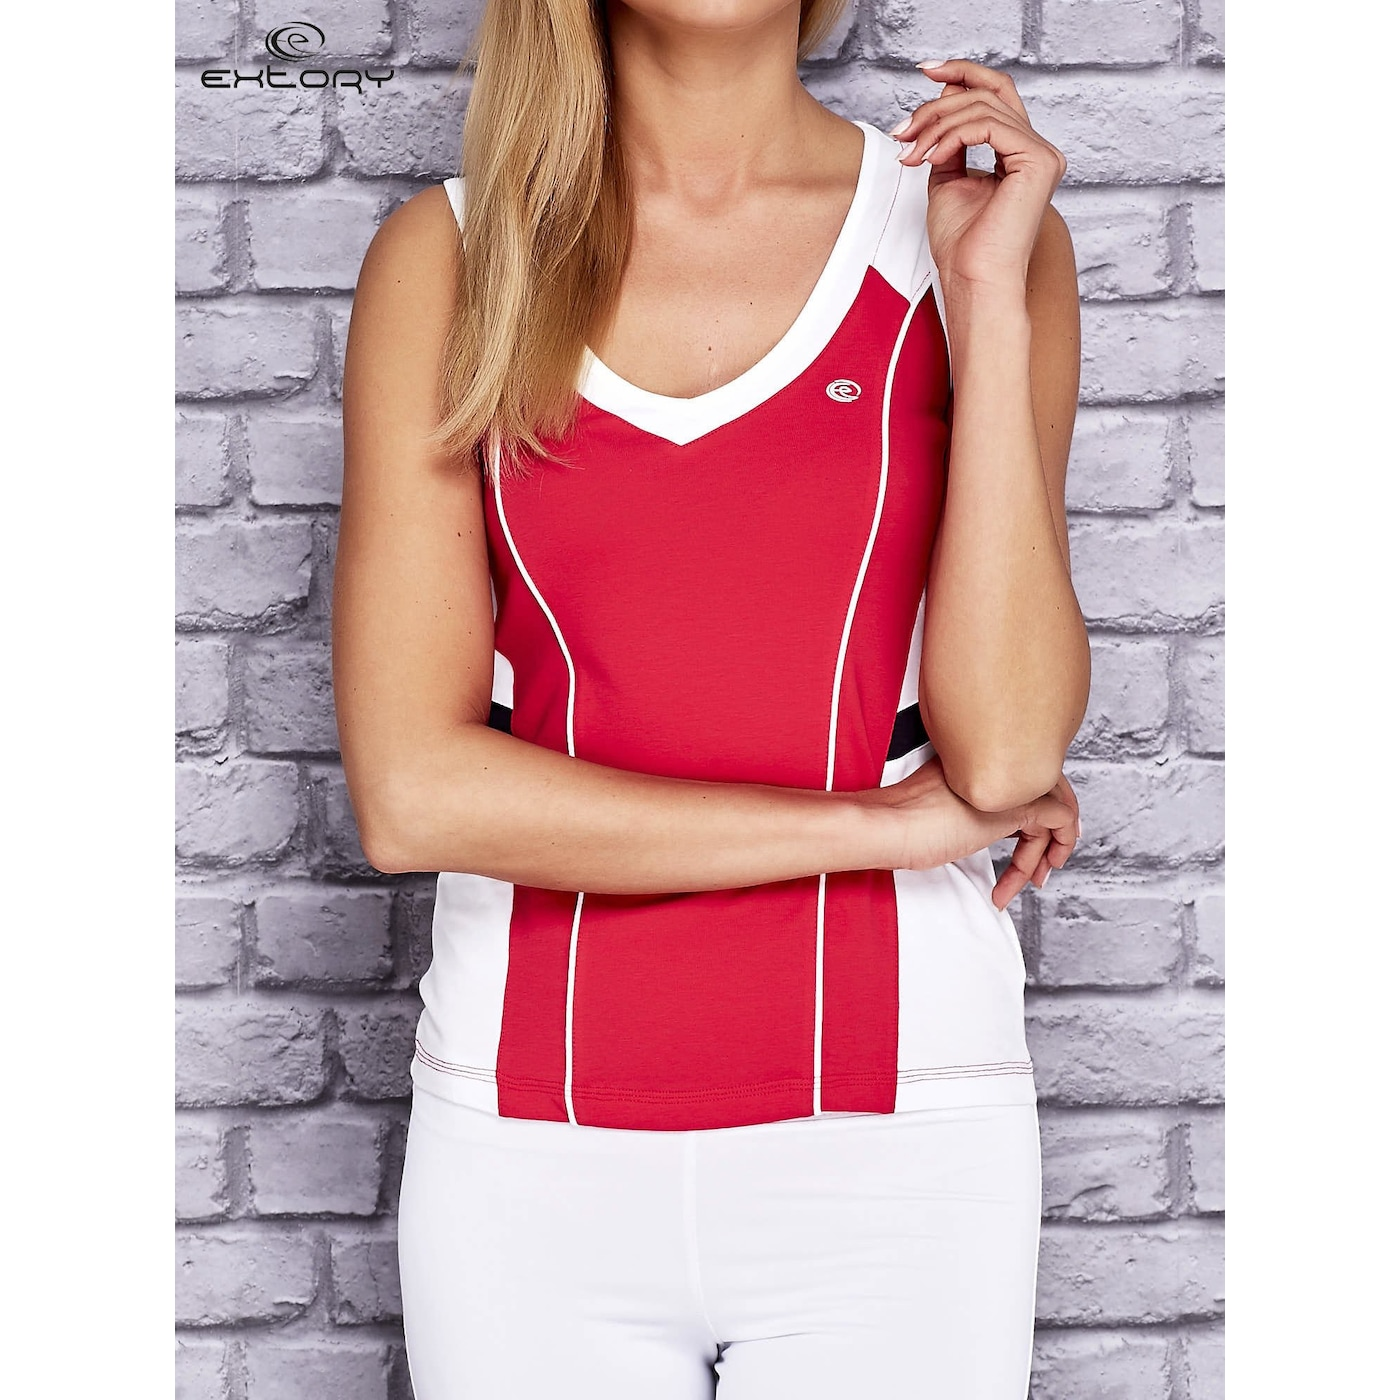 Women´s pink and white sports top with a print on the back